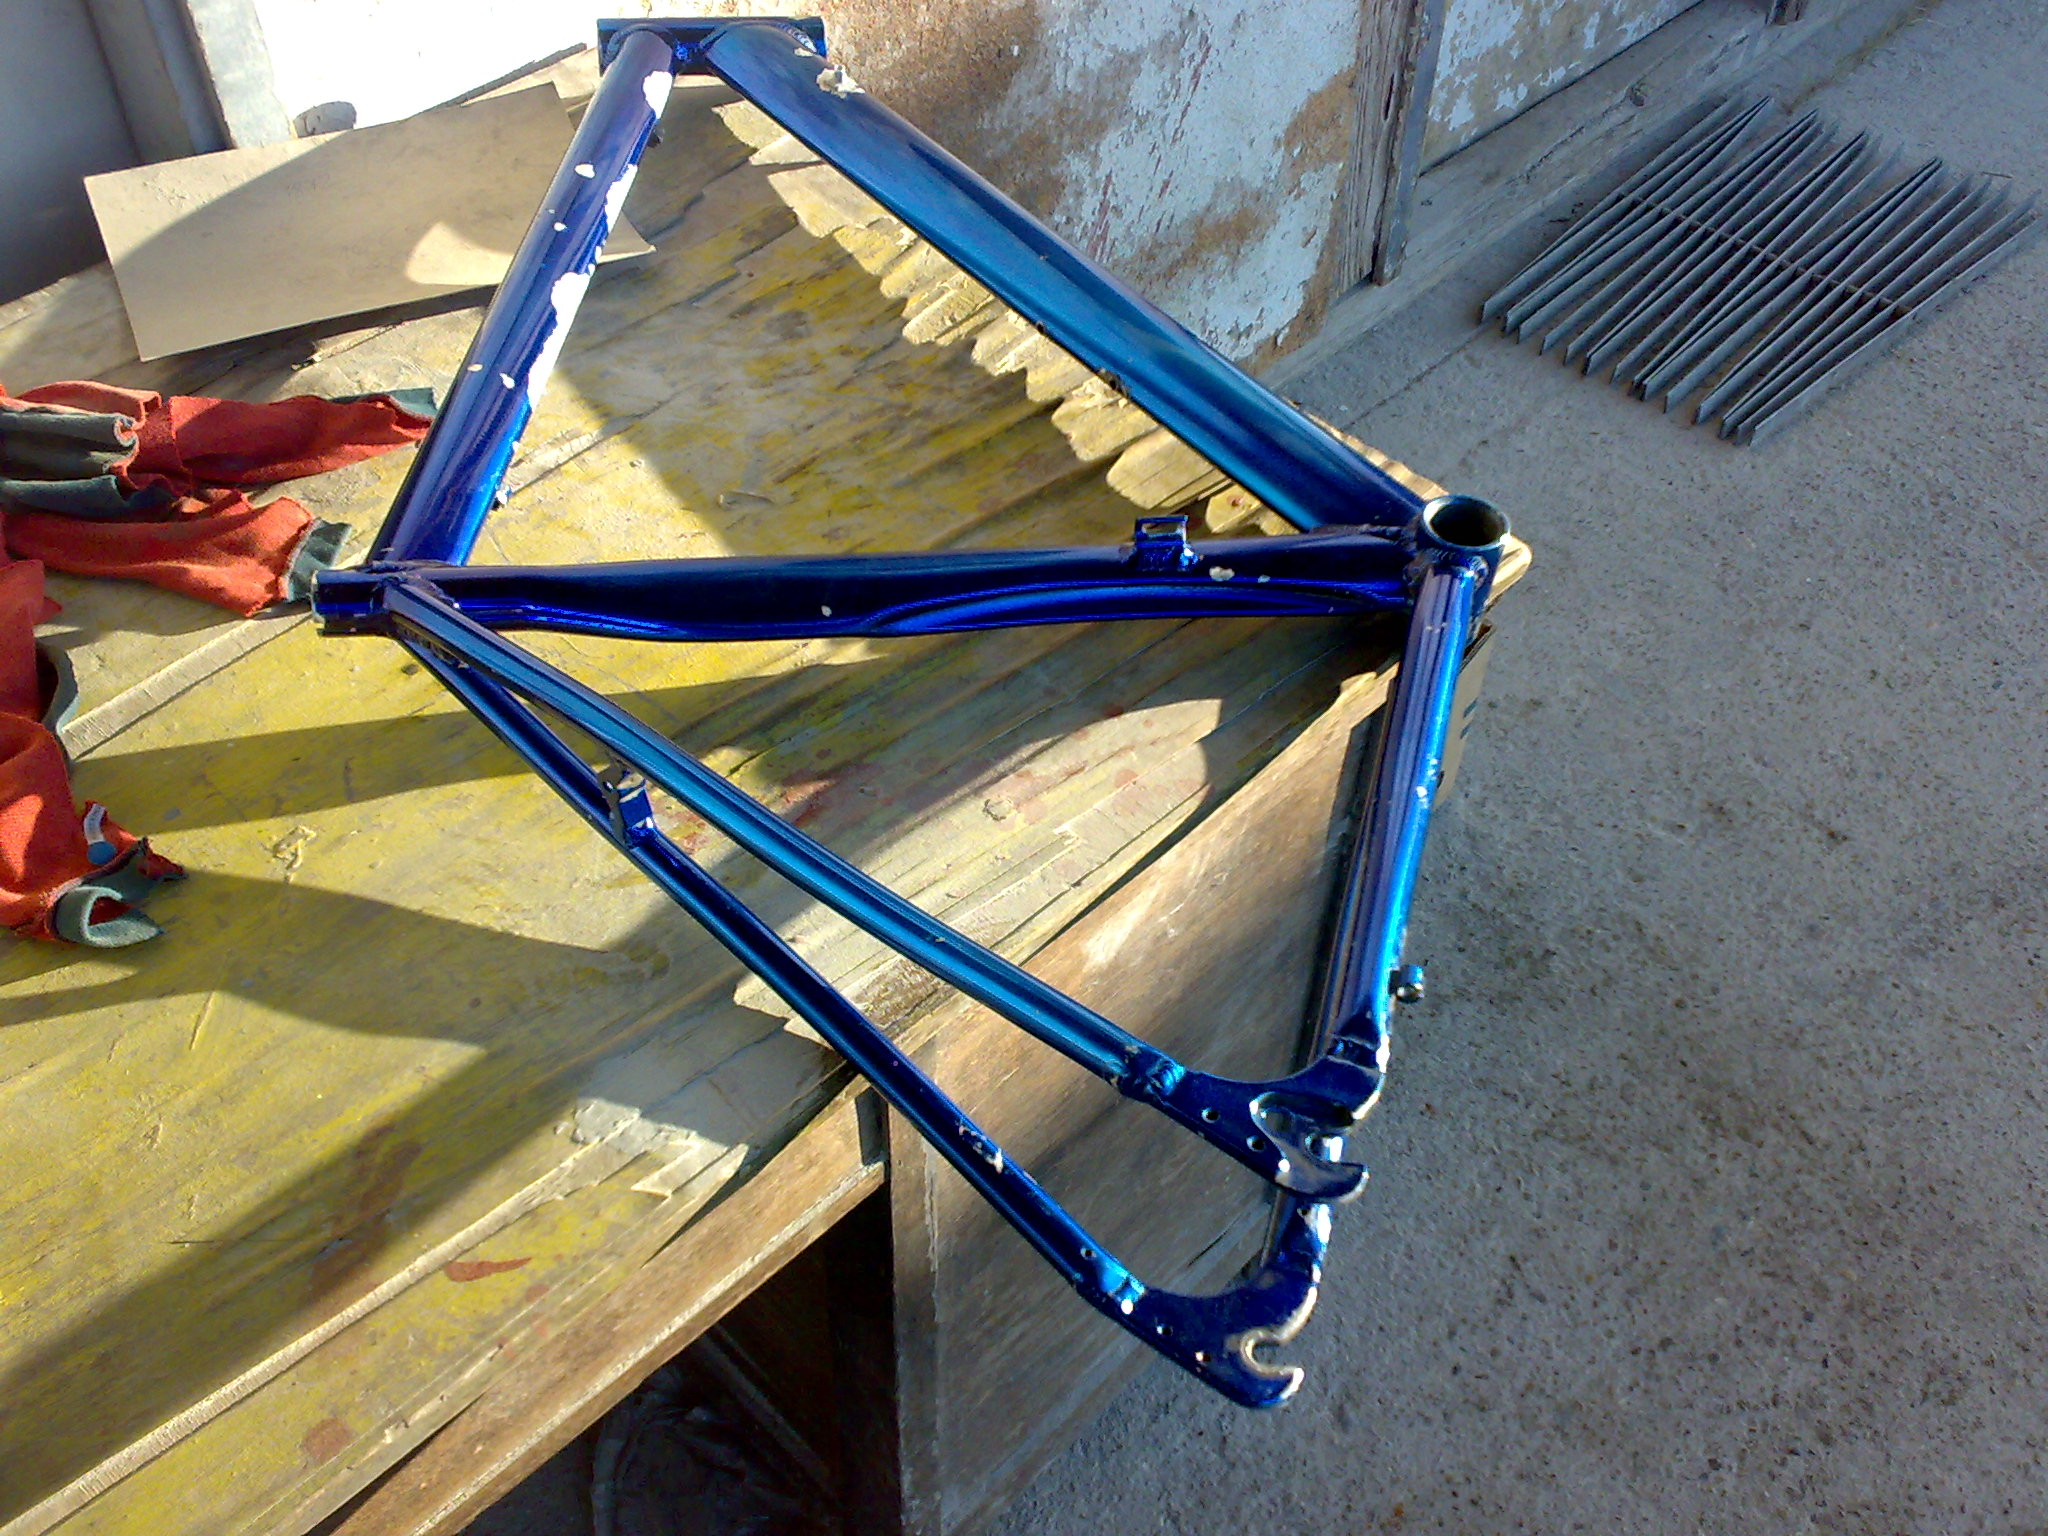 how to paint aluminium bicycle frame step by step guide. Black Bedroom Furniture Sets. Home Design Ideas